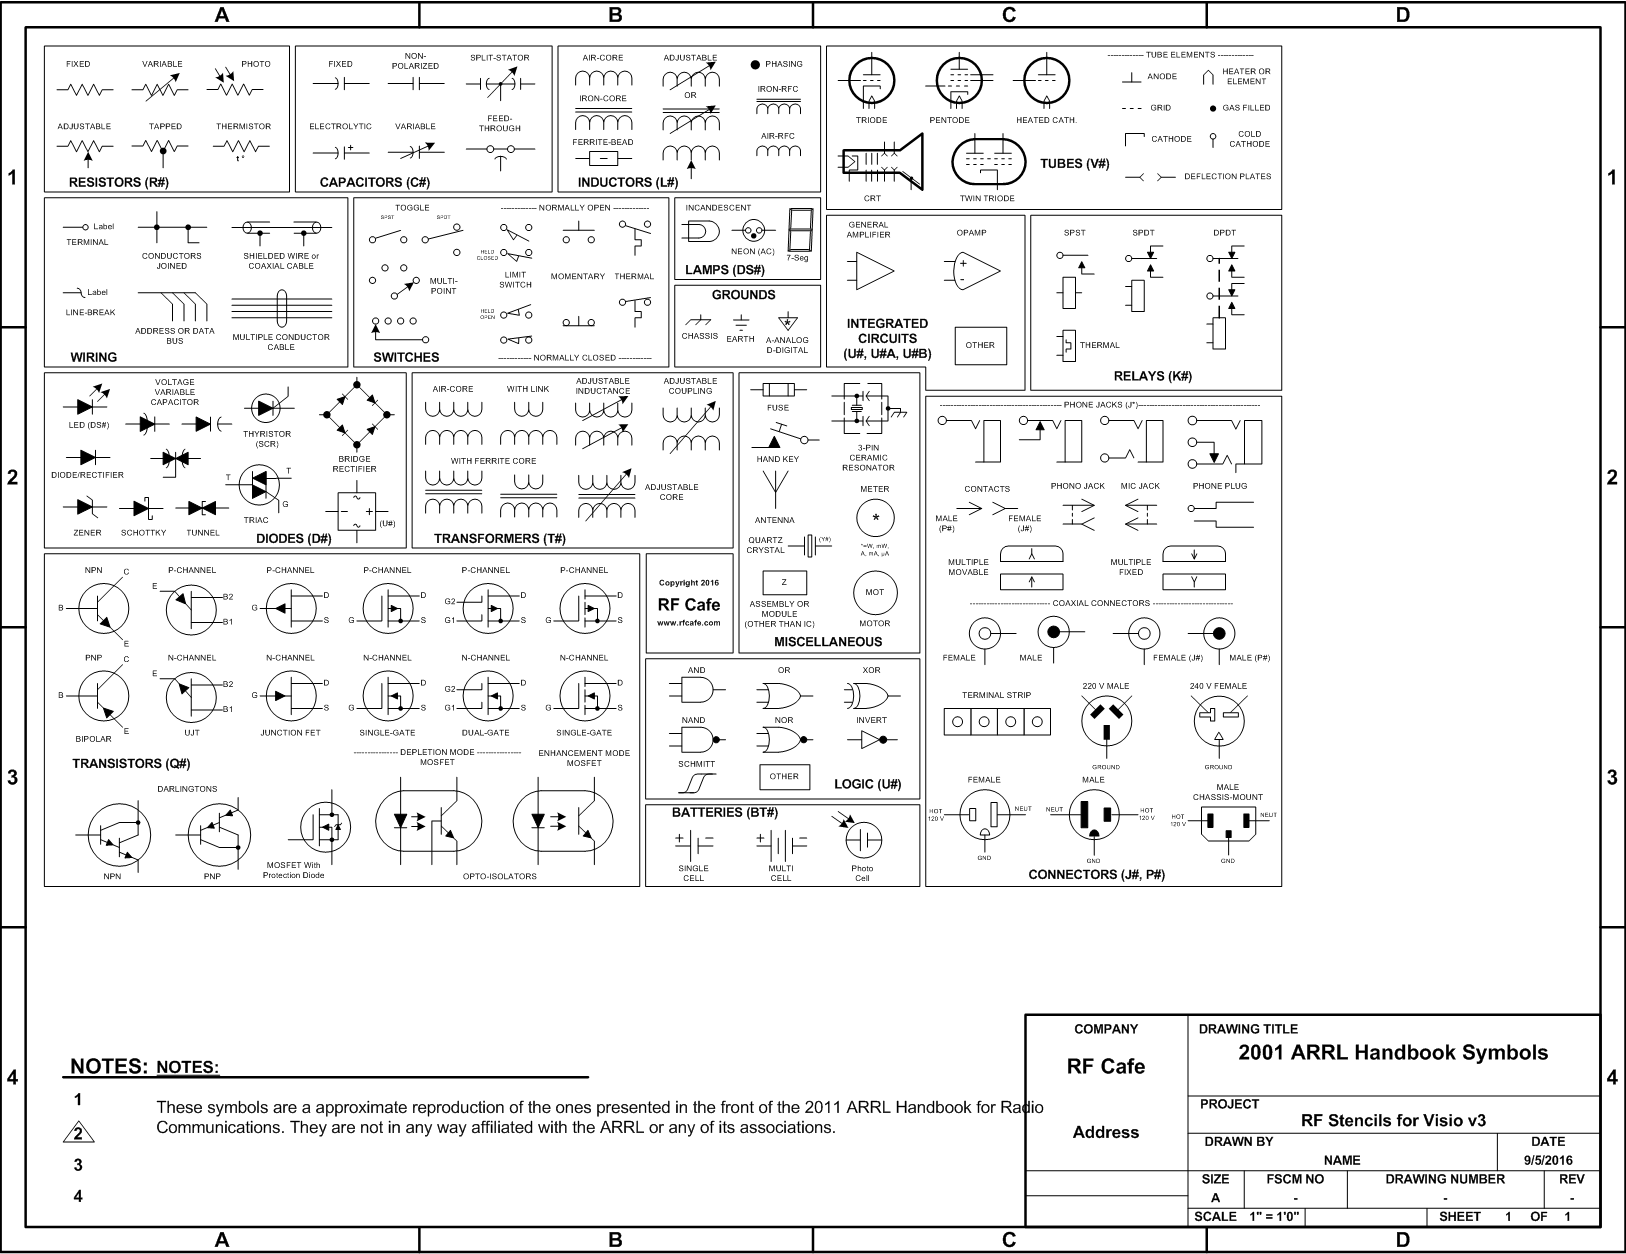 Rf Microwave Wireless Analog Block Diagrams Stencils Shapes For Ac Wiring Symbols Visio Circuit Schematic From The 2011 Arrl Handbook Cafe